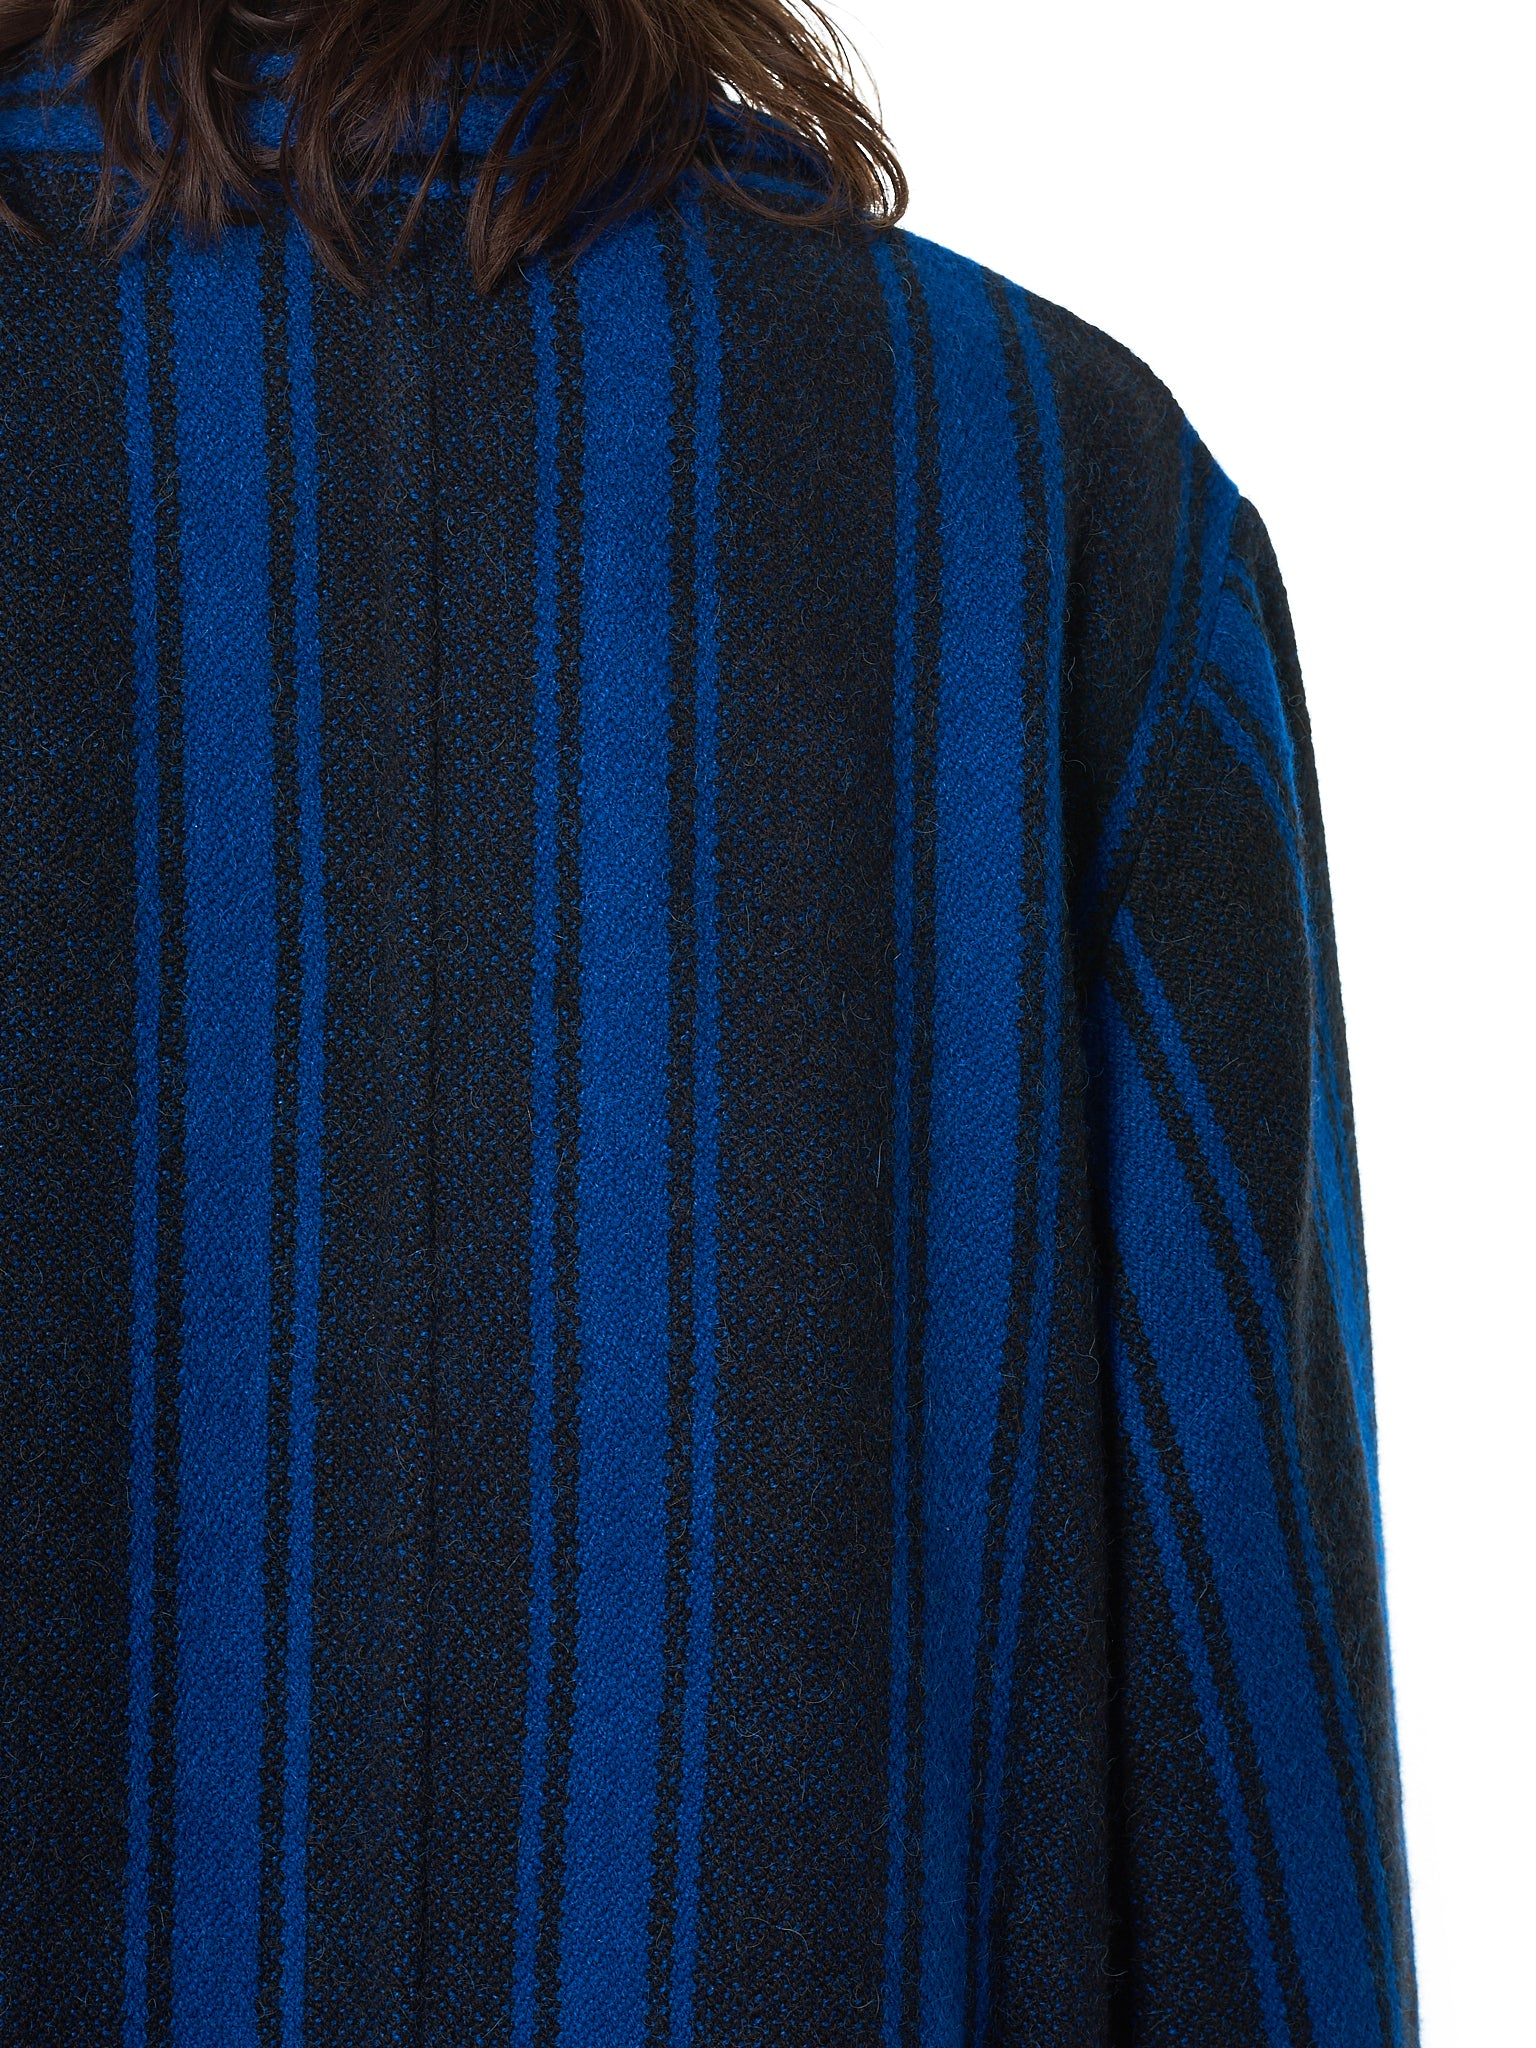 Denis Colomb Cardigan - Hlorenzo Detail 3